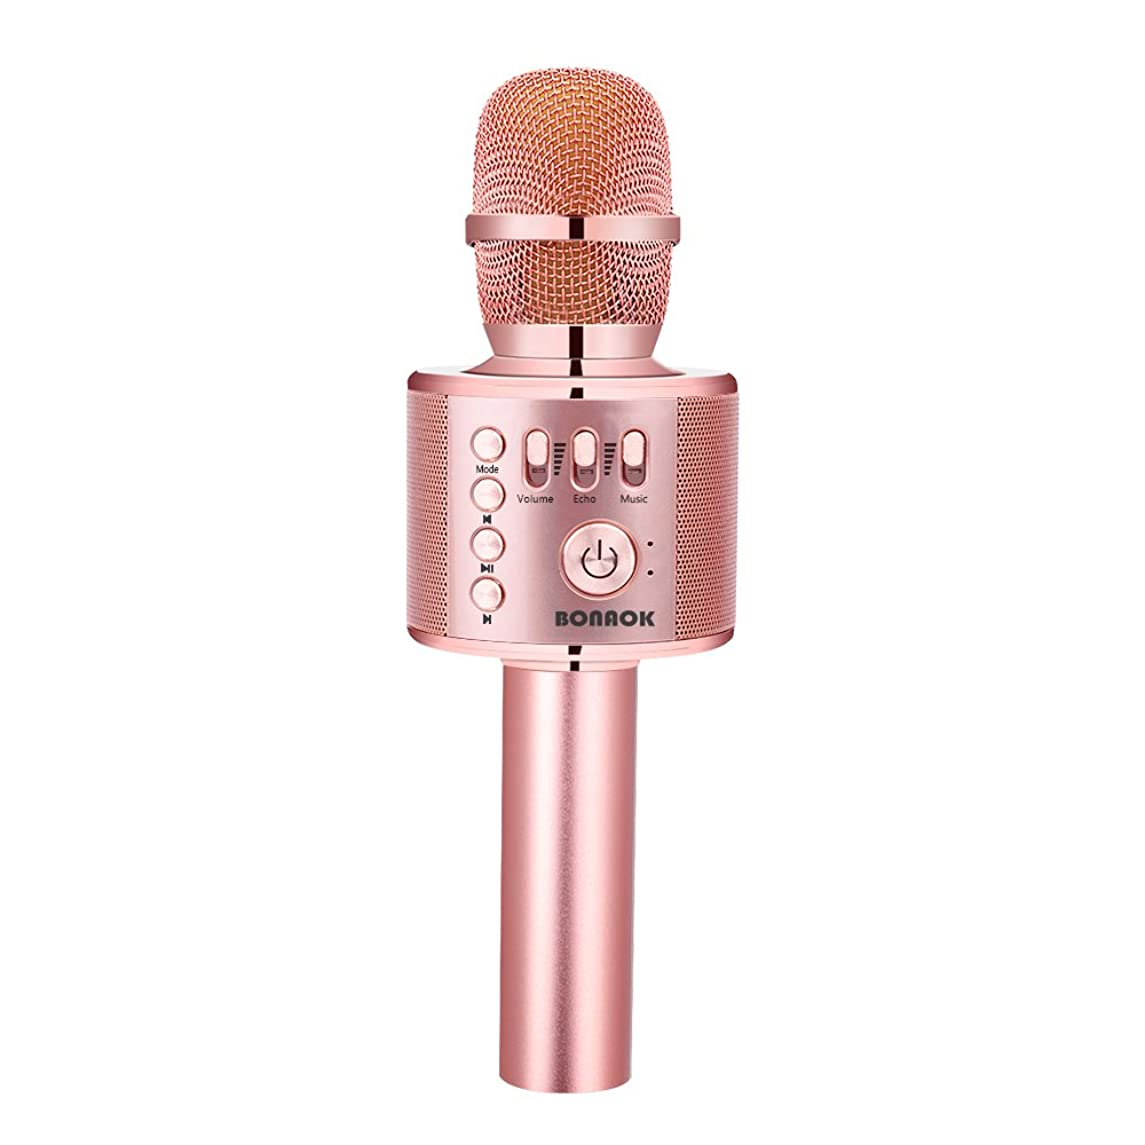 BONAOK Wireless Bluetooth Karaoke Microphone,3-in-1 Portable Handheld karaoke Mic Speaker Machine Home Party Birthday Graduation Gift for iPhone/Android/iPad/Sony/PC/All Smartphone(Q37 Rose Gold Plus)